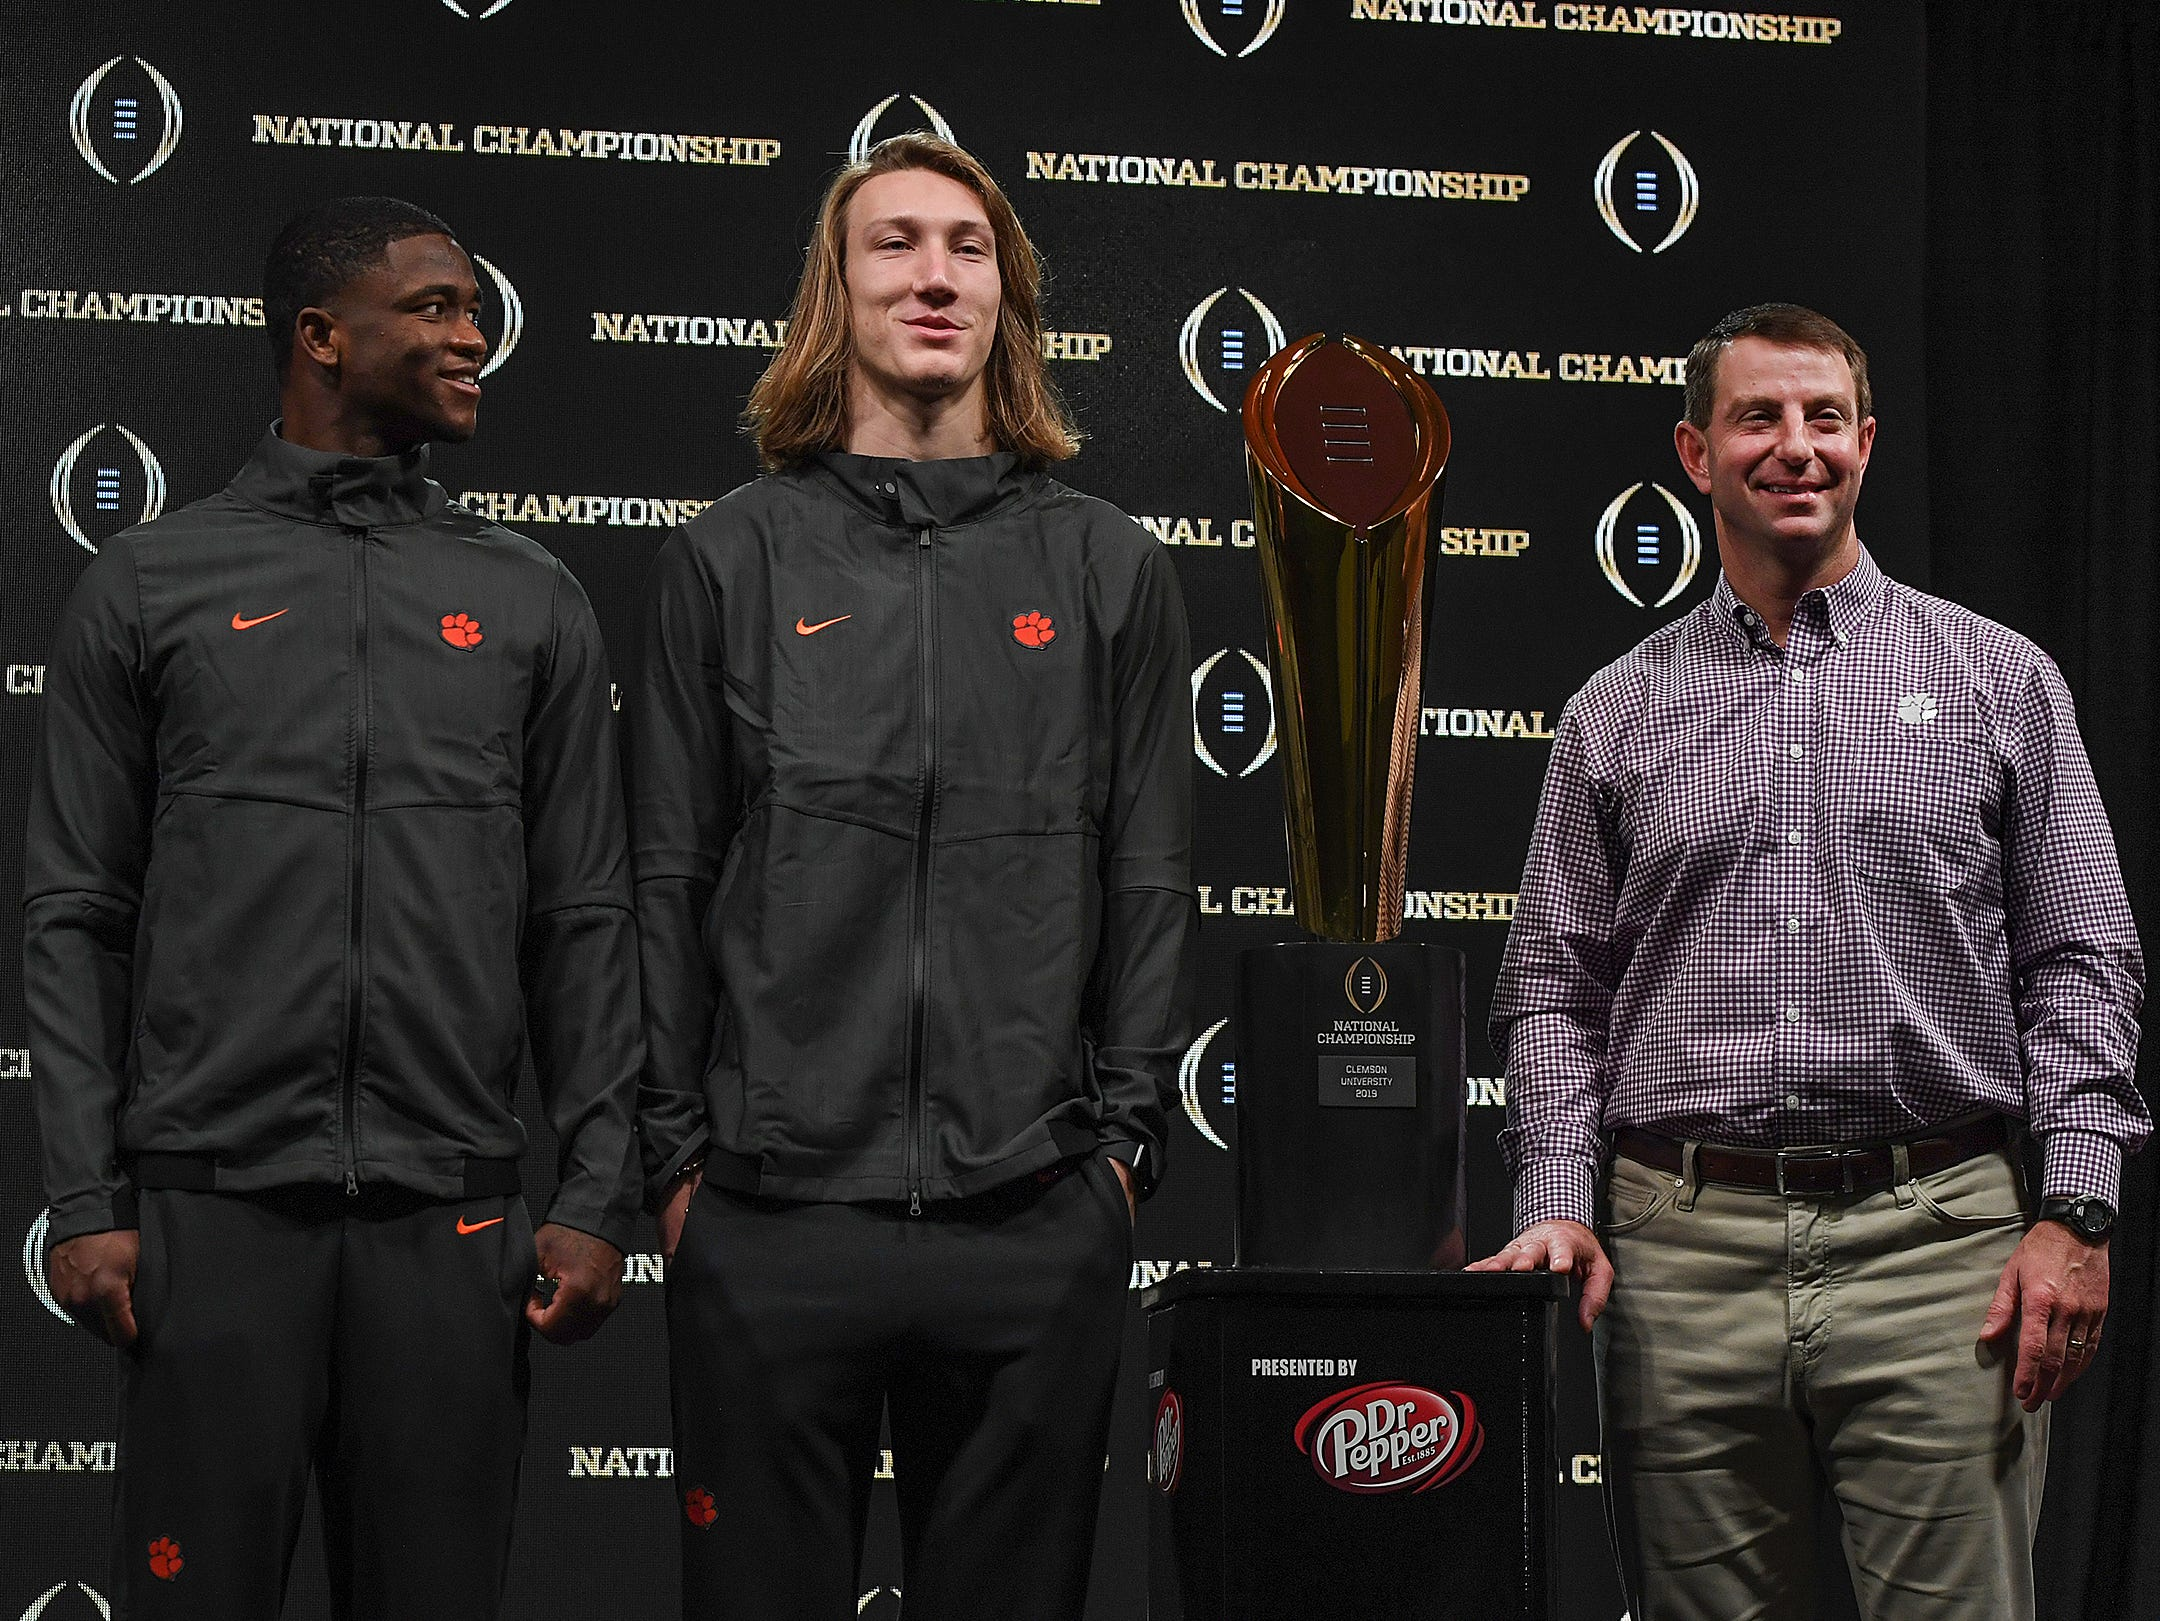 From left, defensive MVP Clemson cornerback Trayvon Mullen, offensive MVP quarterback Trevor Lawrence and head coach Dabo Swinney stand with their College Football National Championship trophy during a press conference in San Jose, CA Tuesday, January 8, 2019.